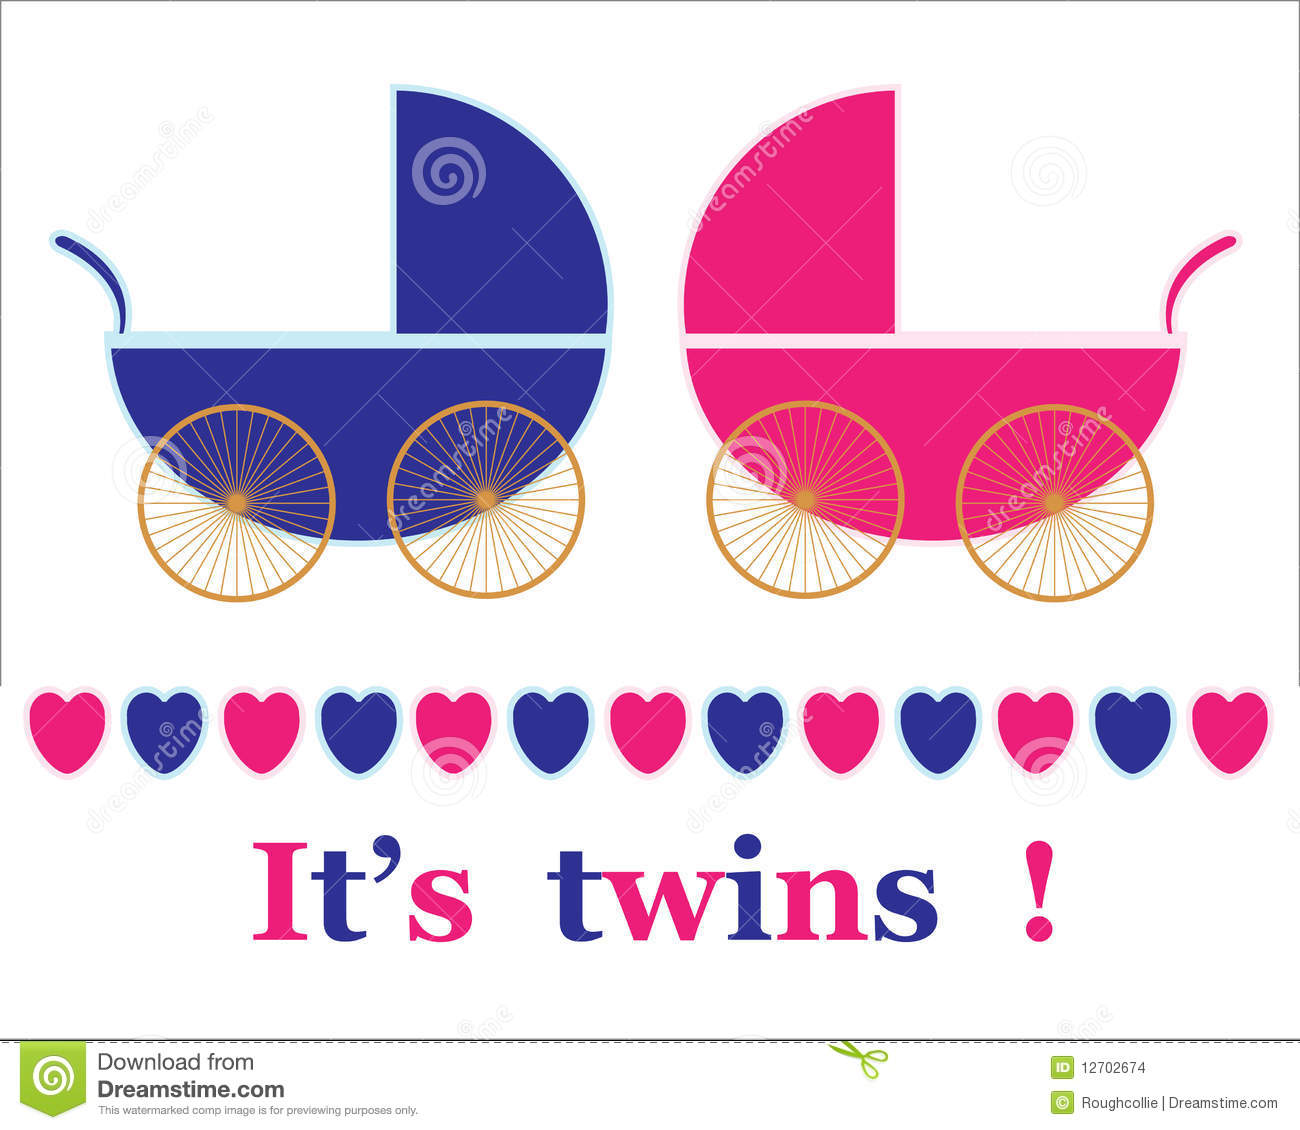 ... for new baby girl and boy twin arrival announcement card, vector Baby Stroller Cartoon